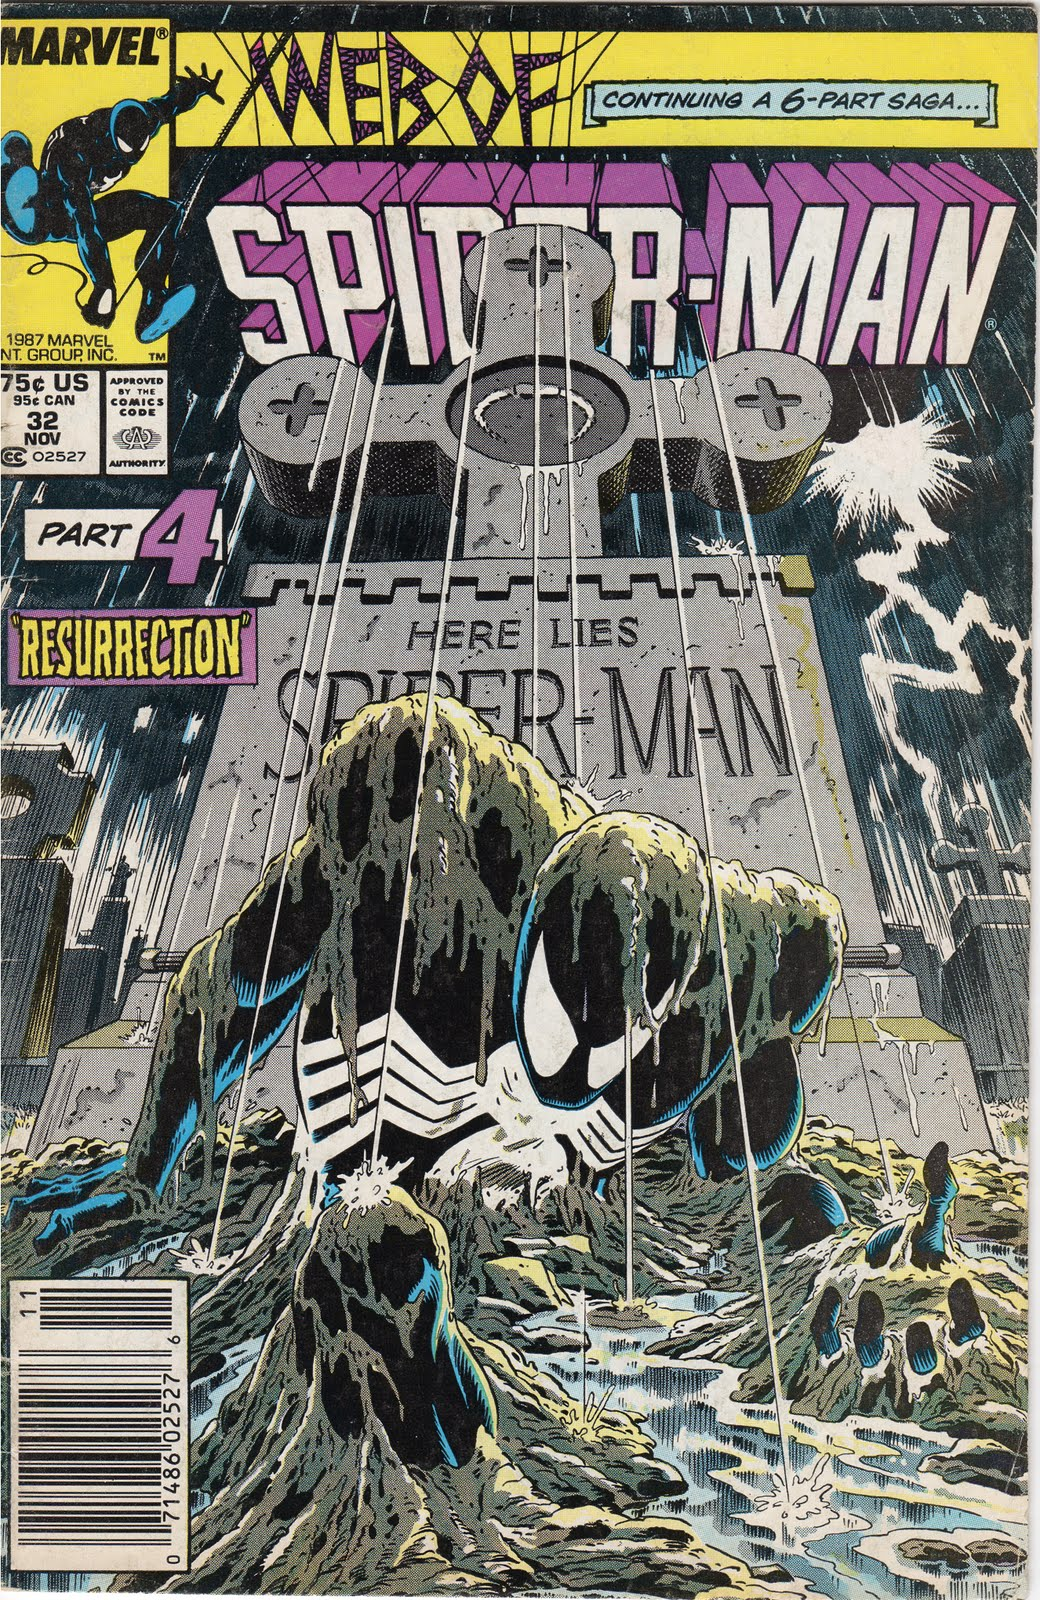 Man 32 Indicted In Alleged Misconduct With 14 Year Old: Sixeightbp: Web Of Spider-Man #32